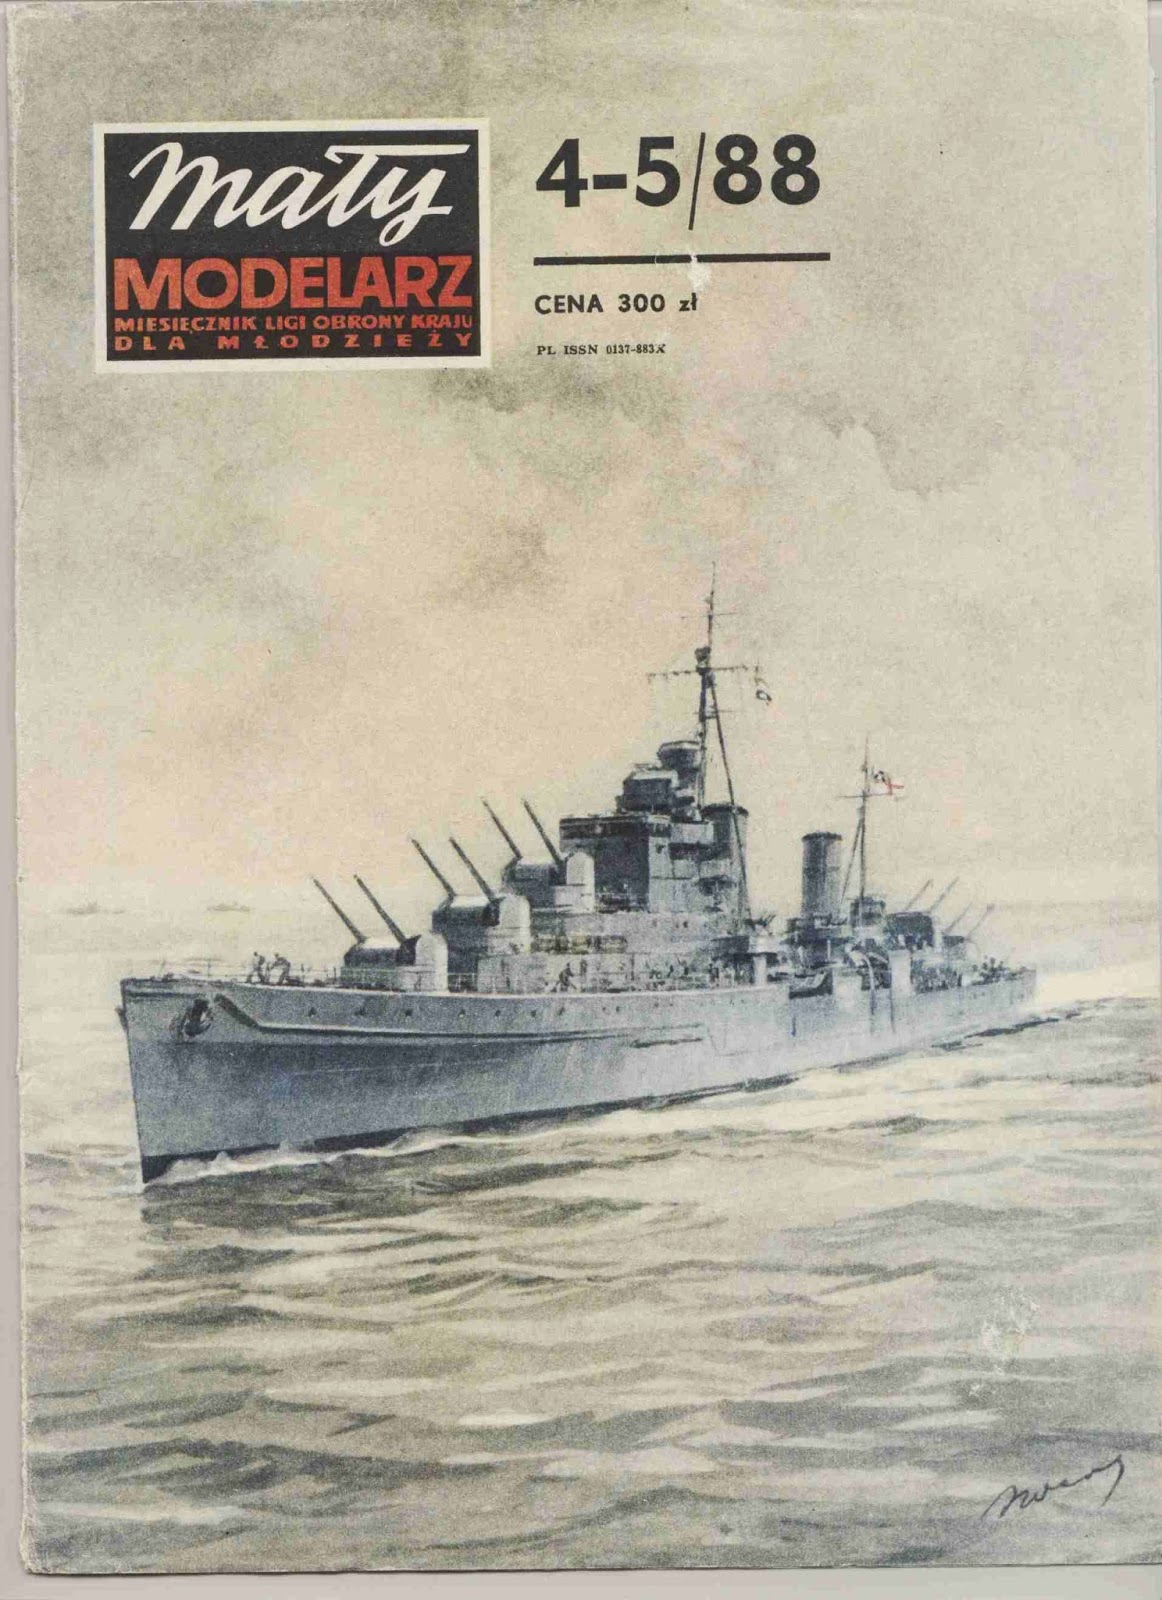 Carrier Papermodel Archives - Page 6 of 9 - Free MOdelkits